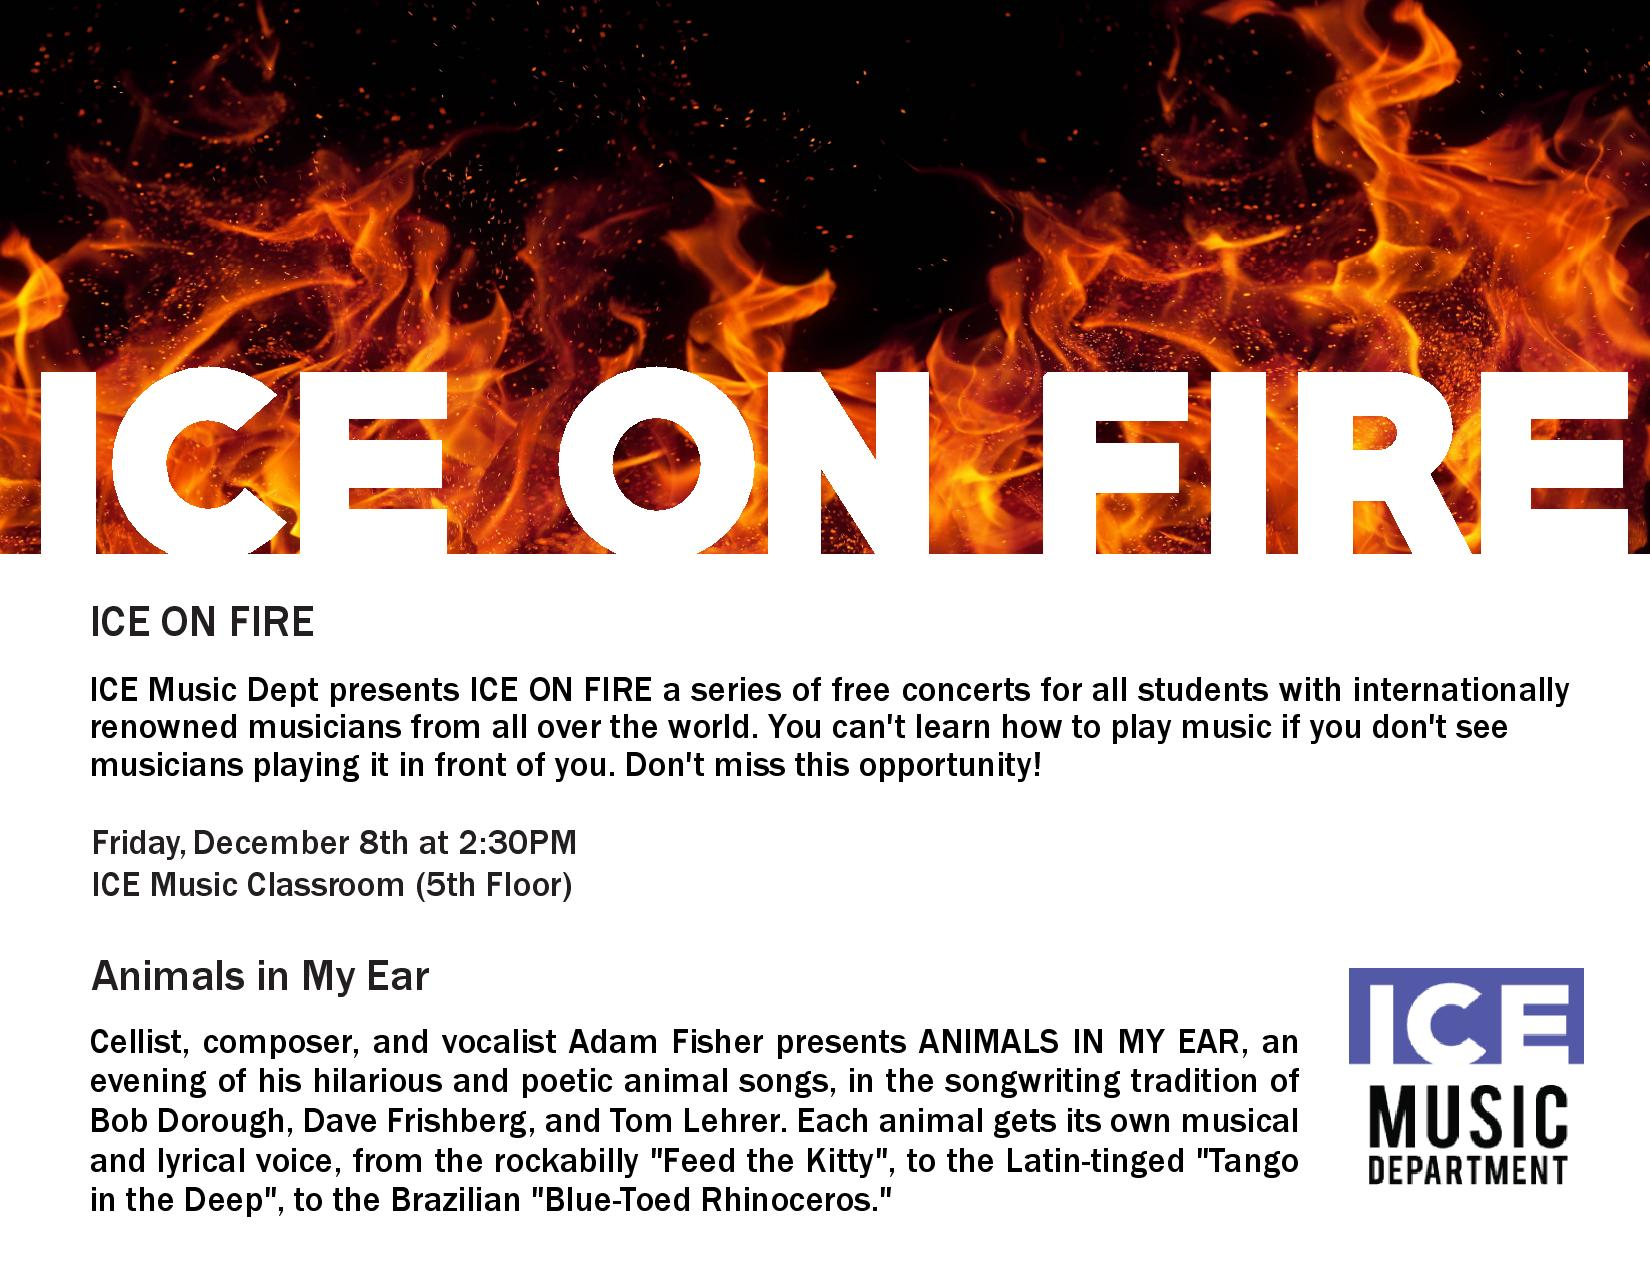 ICE_on_fire-page-001.jpg